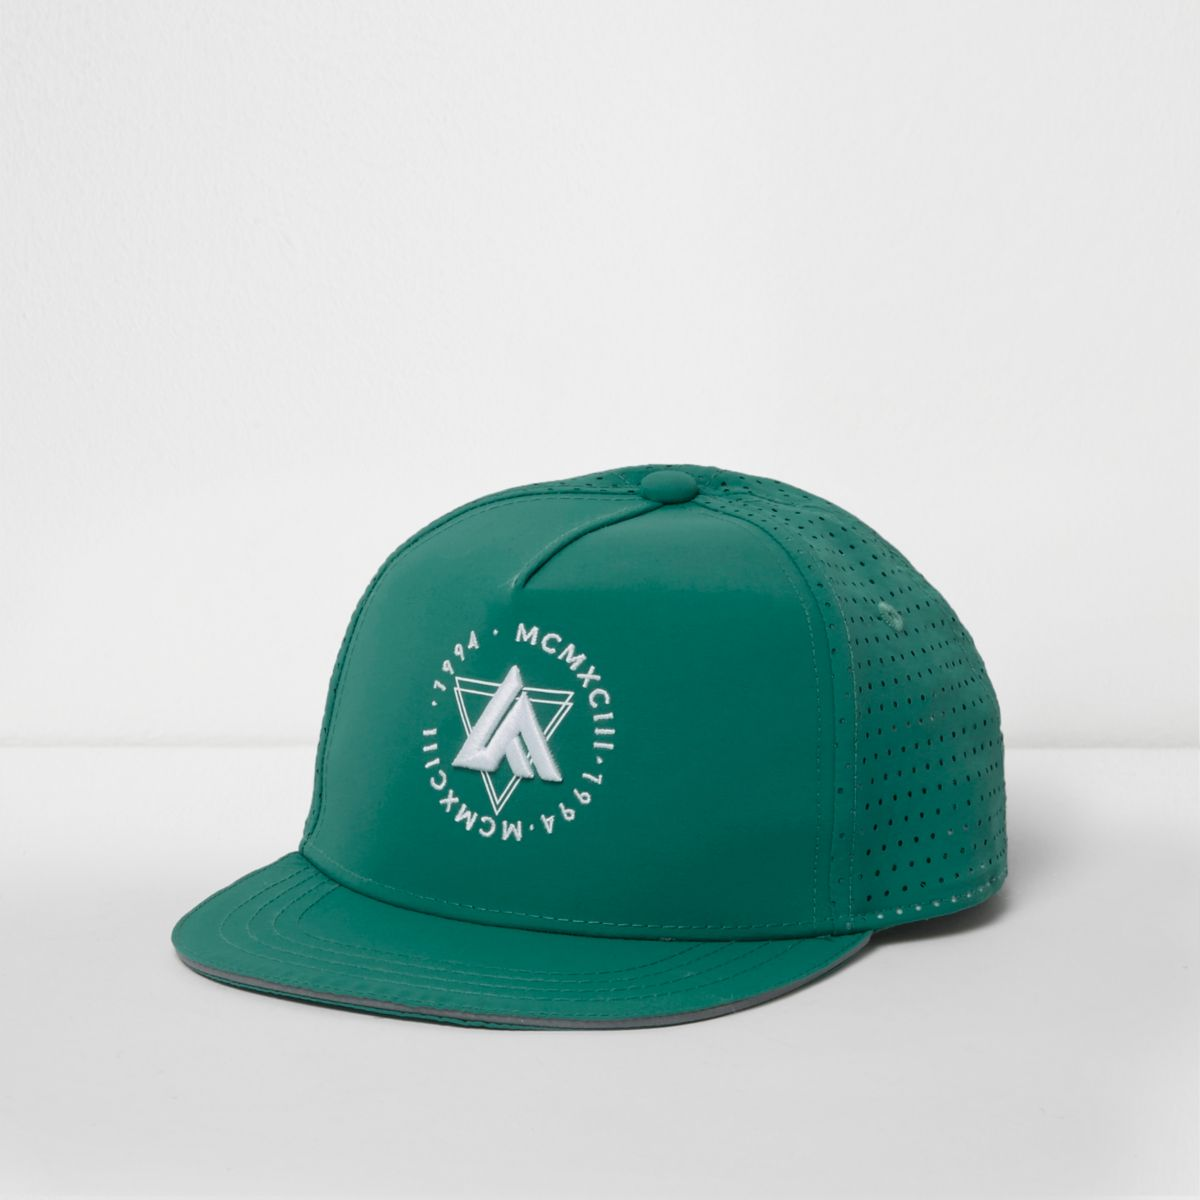 Boys green perforated mesh snapback cap